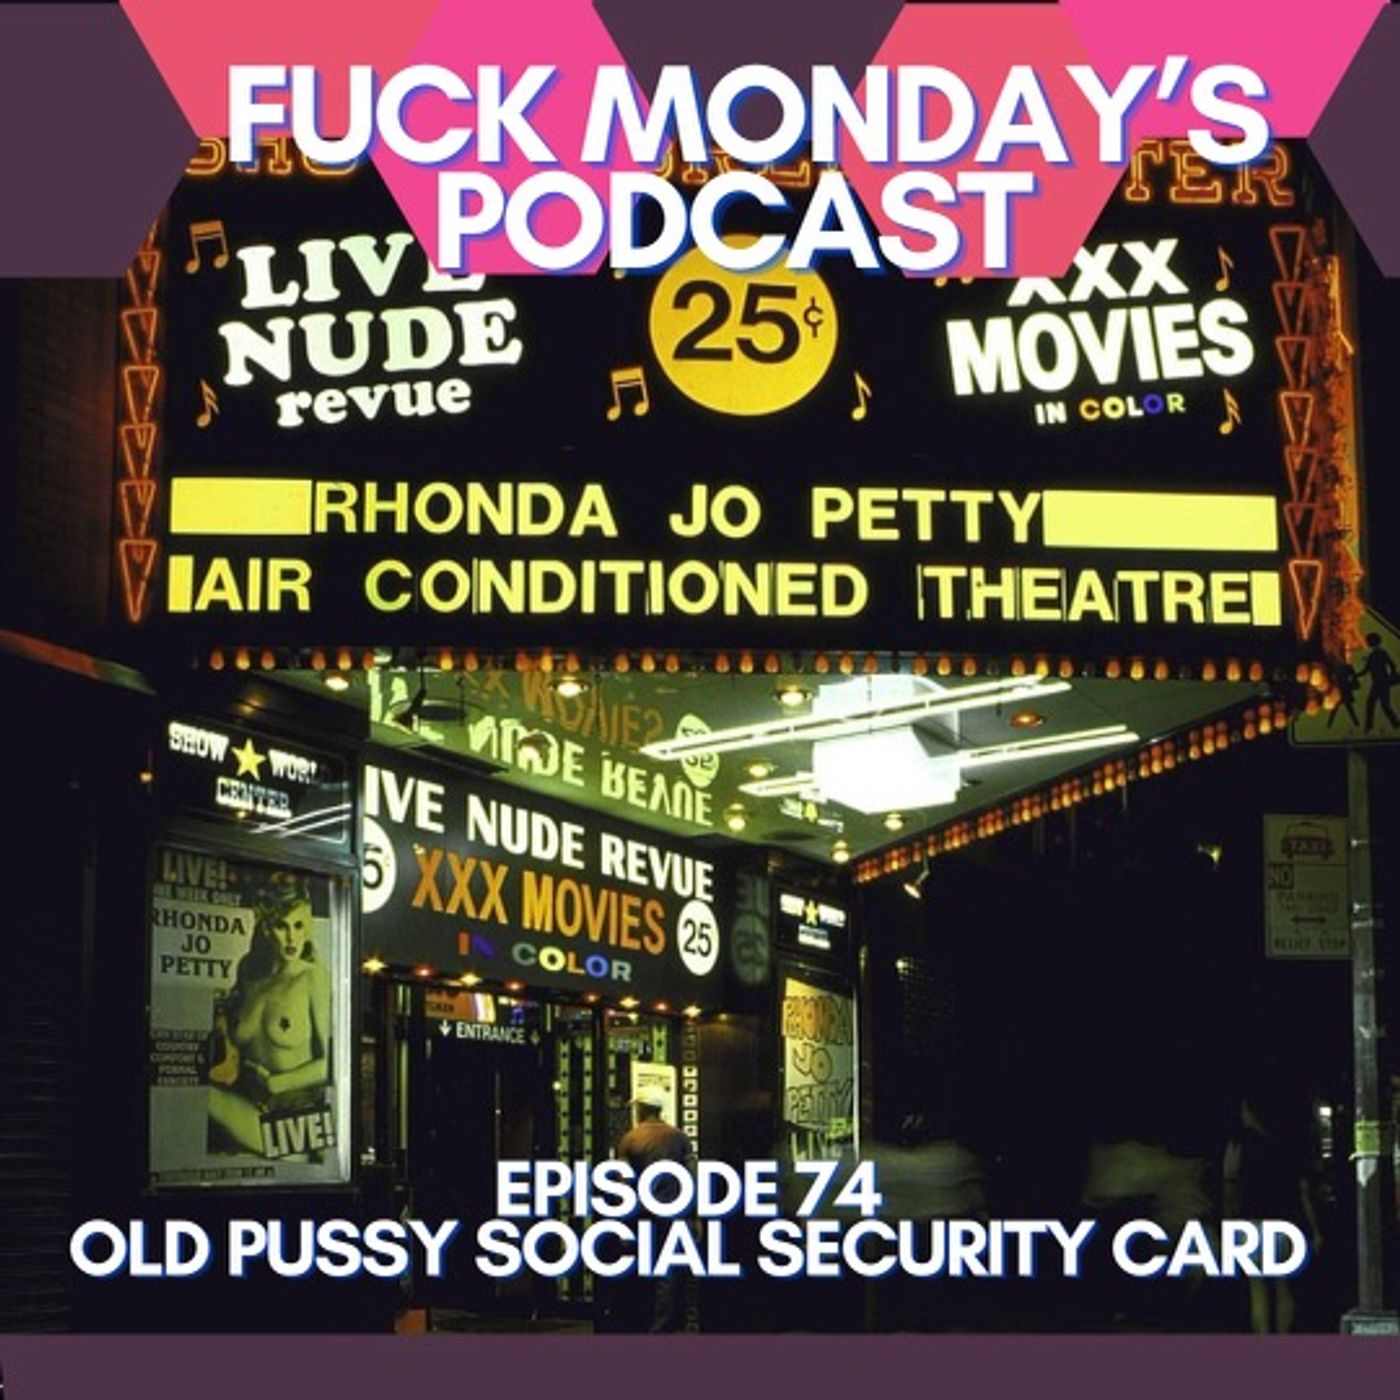 Episode 75:Old Pussy, Social Security Card